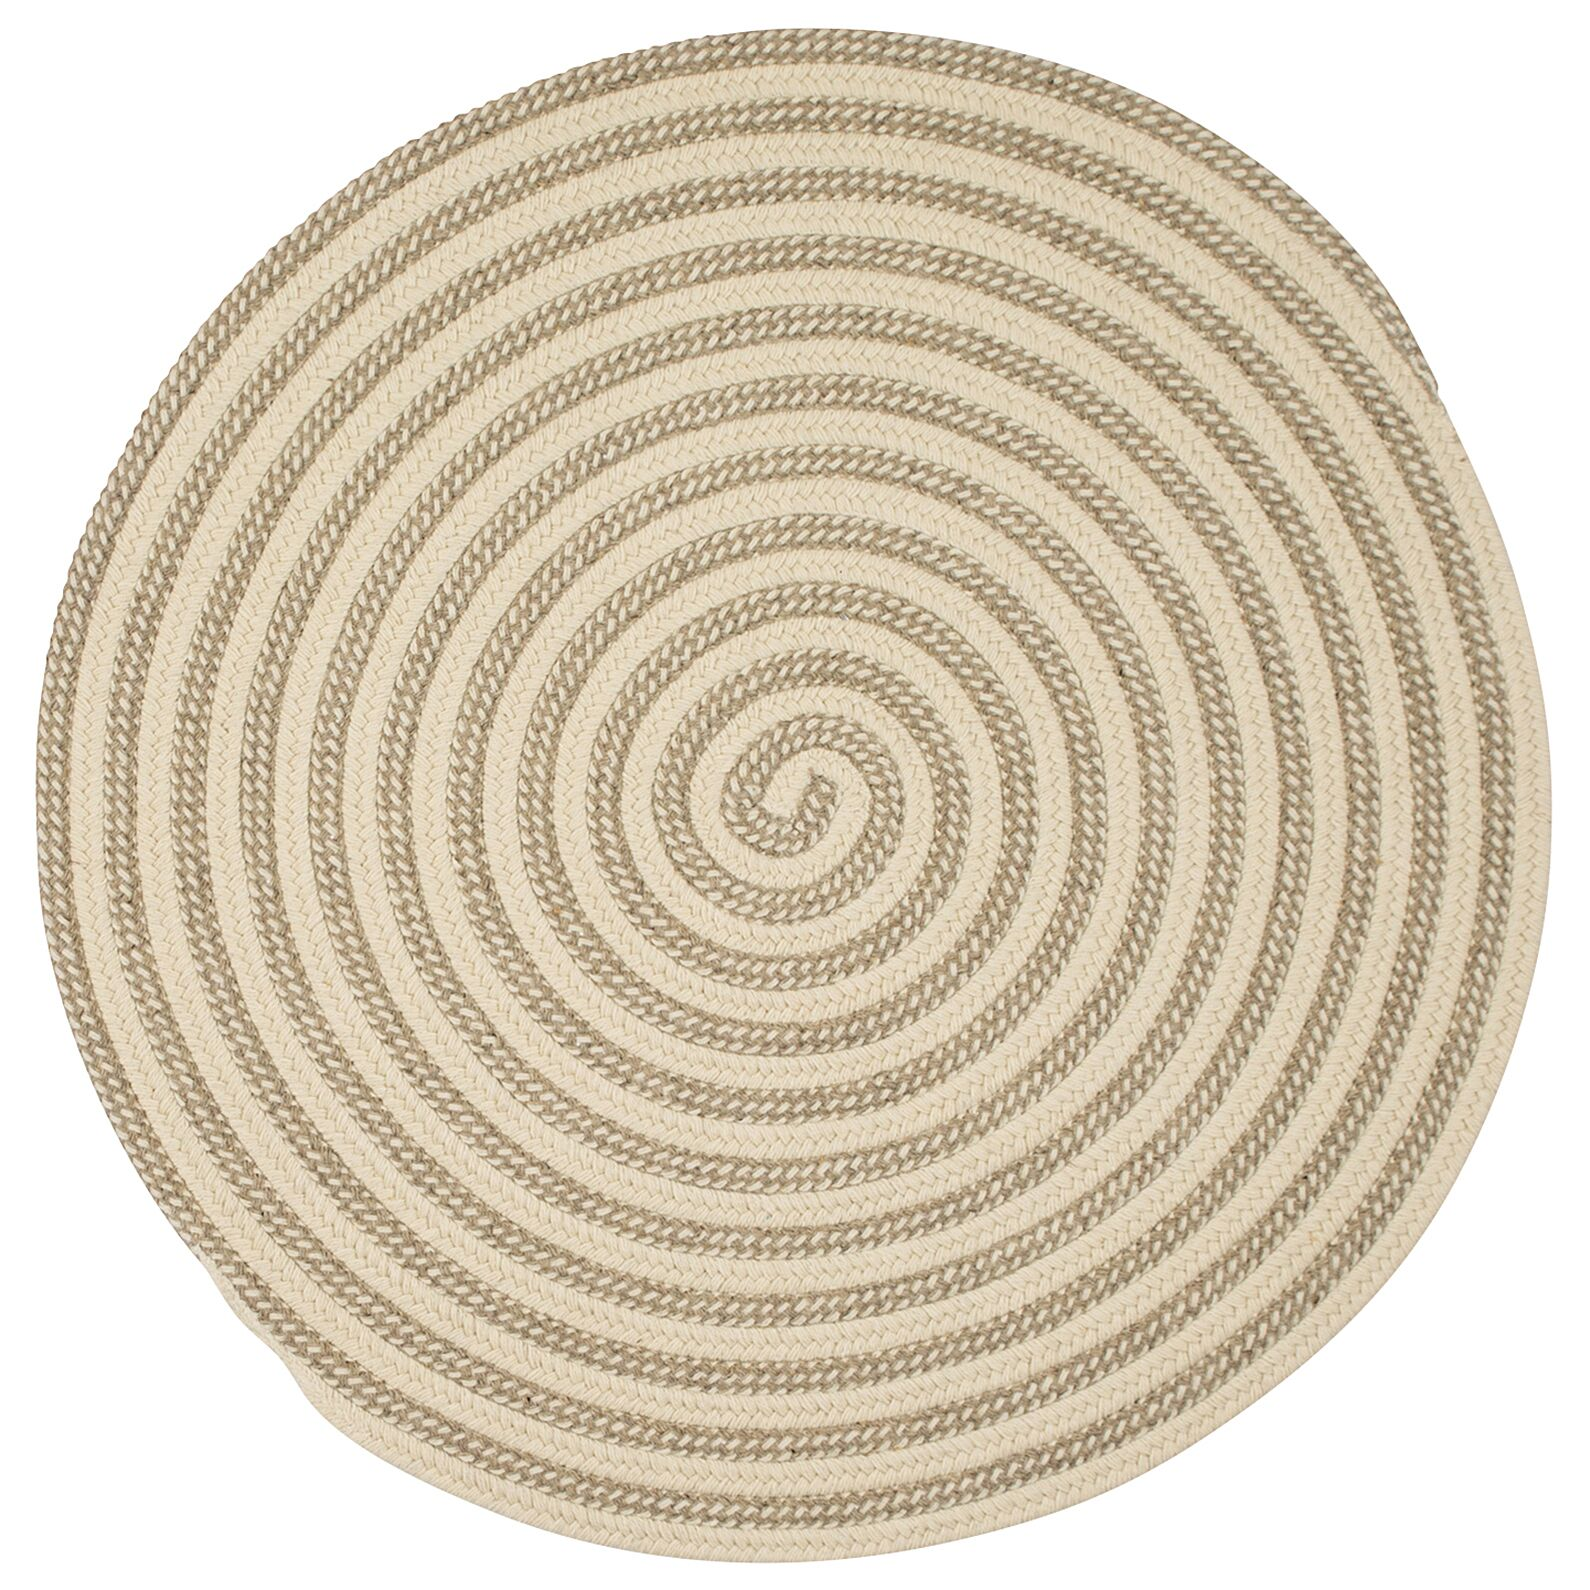 Cadenville Hand-Woven Natural Area Rug Rug Size: Round 10'